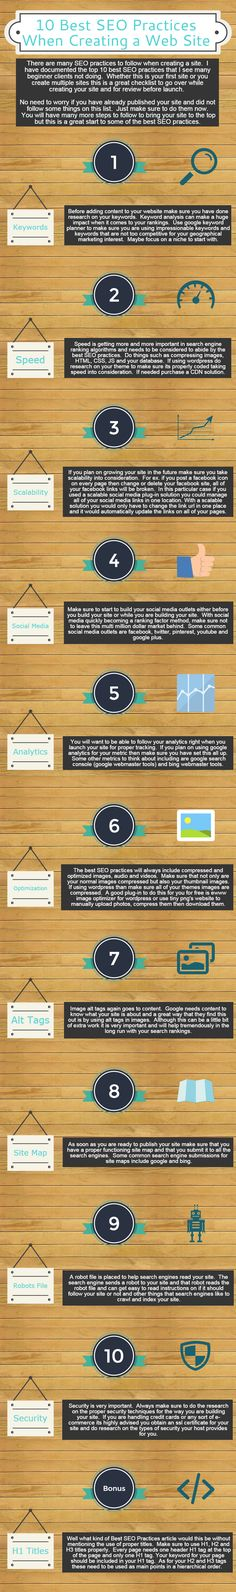 10 Best SEO Practices When Creating a Web Site